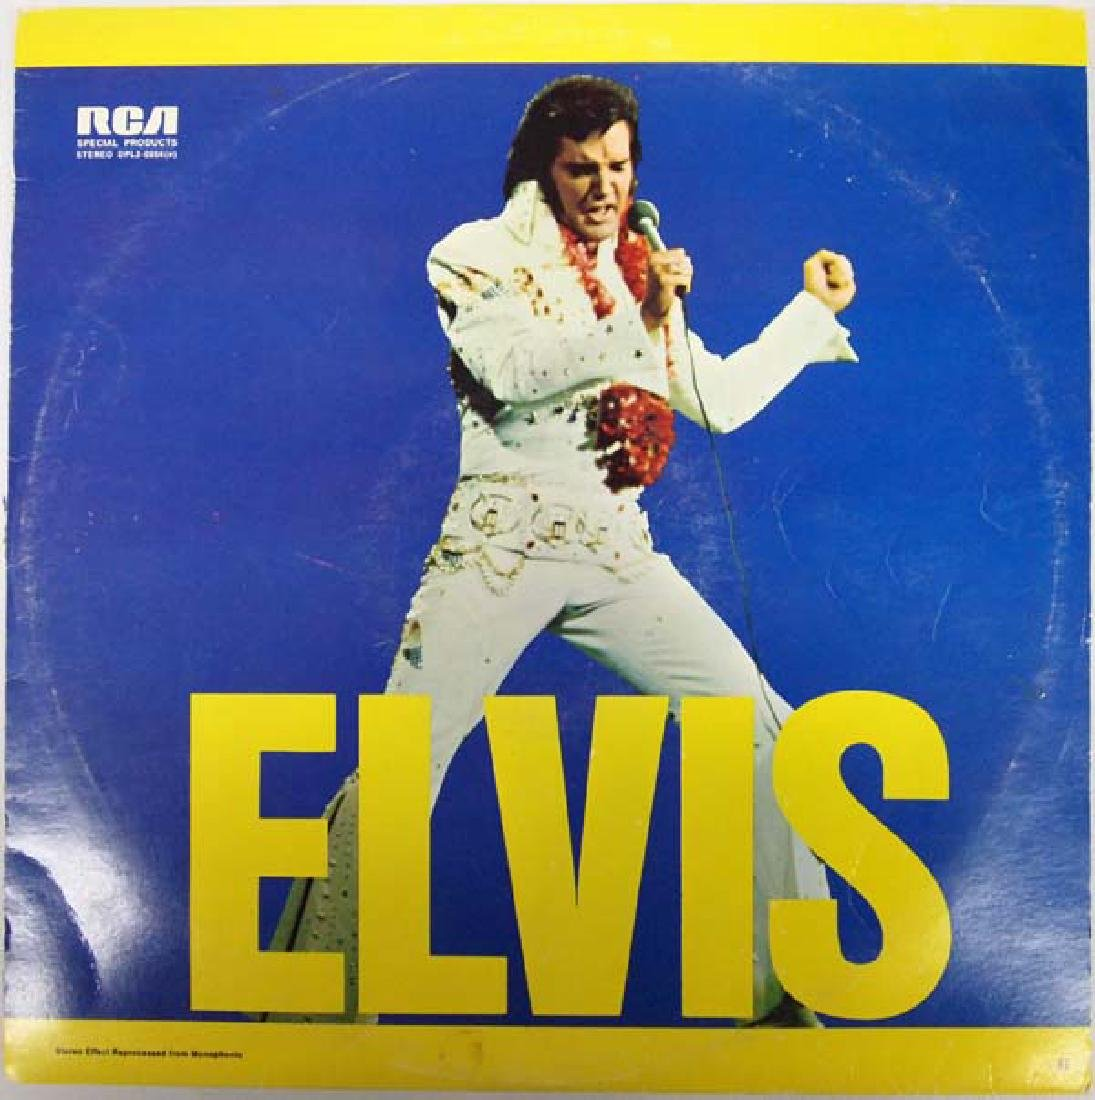 1973 RCA Elvis 33 RPM Vinyl Record Album